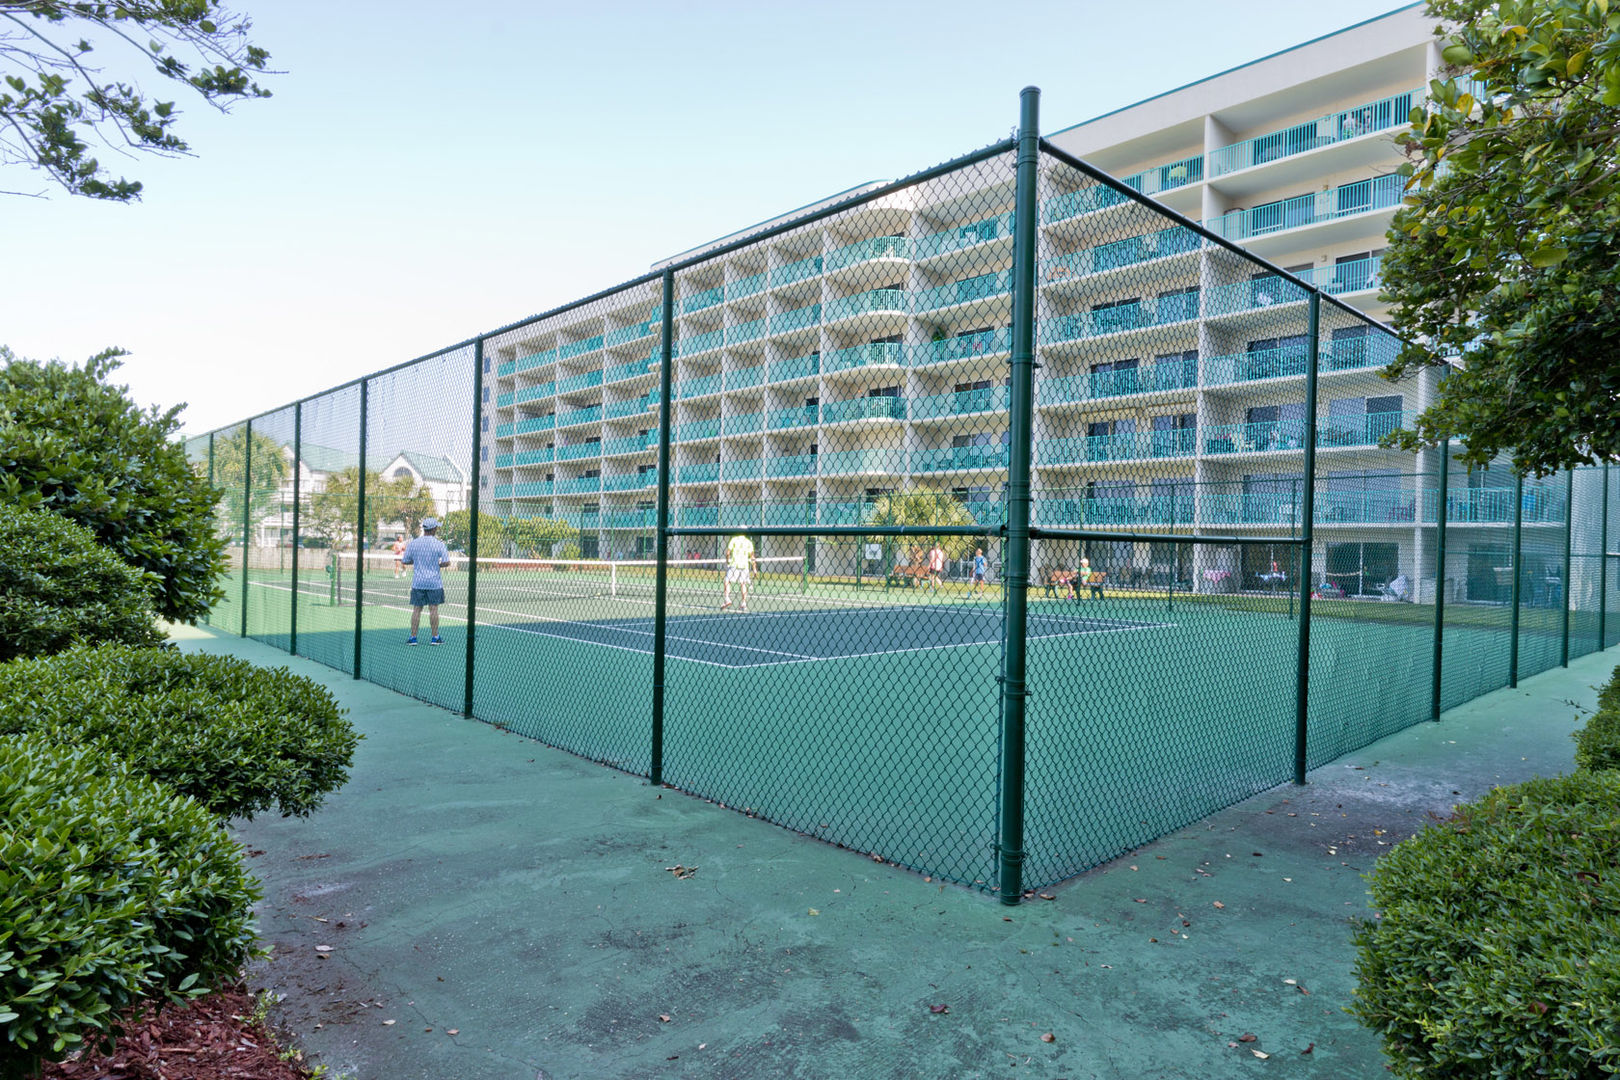 Tennis court at the Plantation.